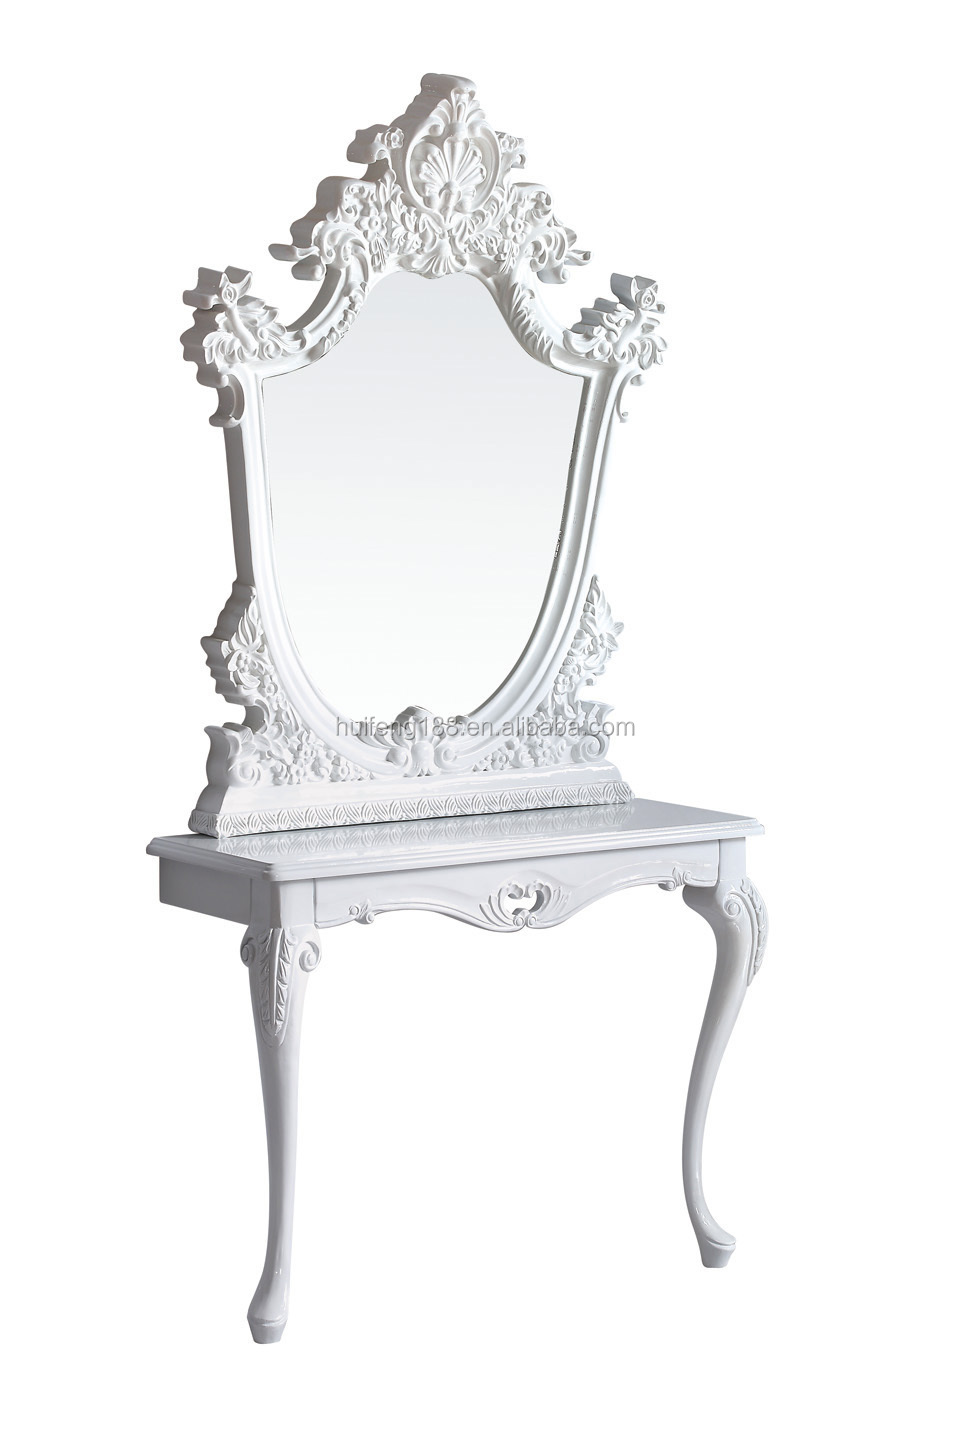 Hot sale salon equipment barber mirror table buy mirror for Salon table and mirror